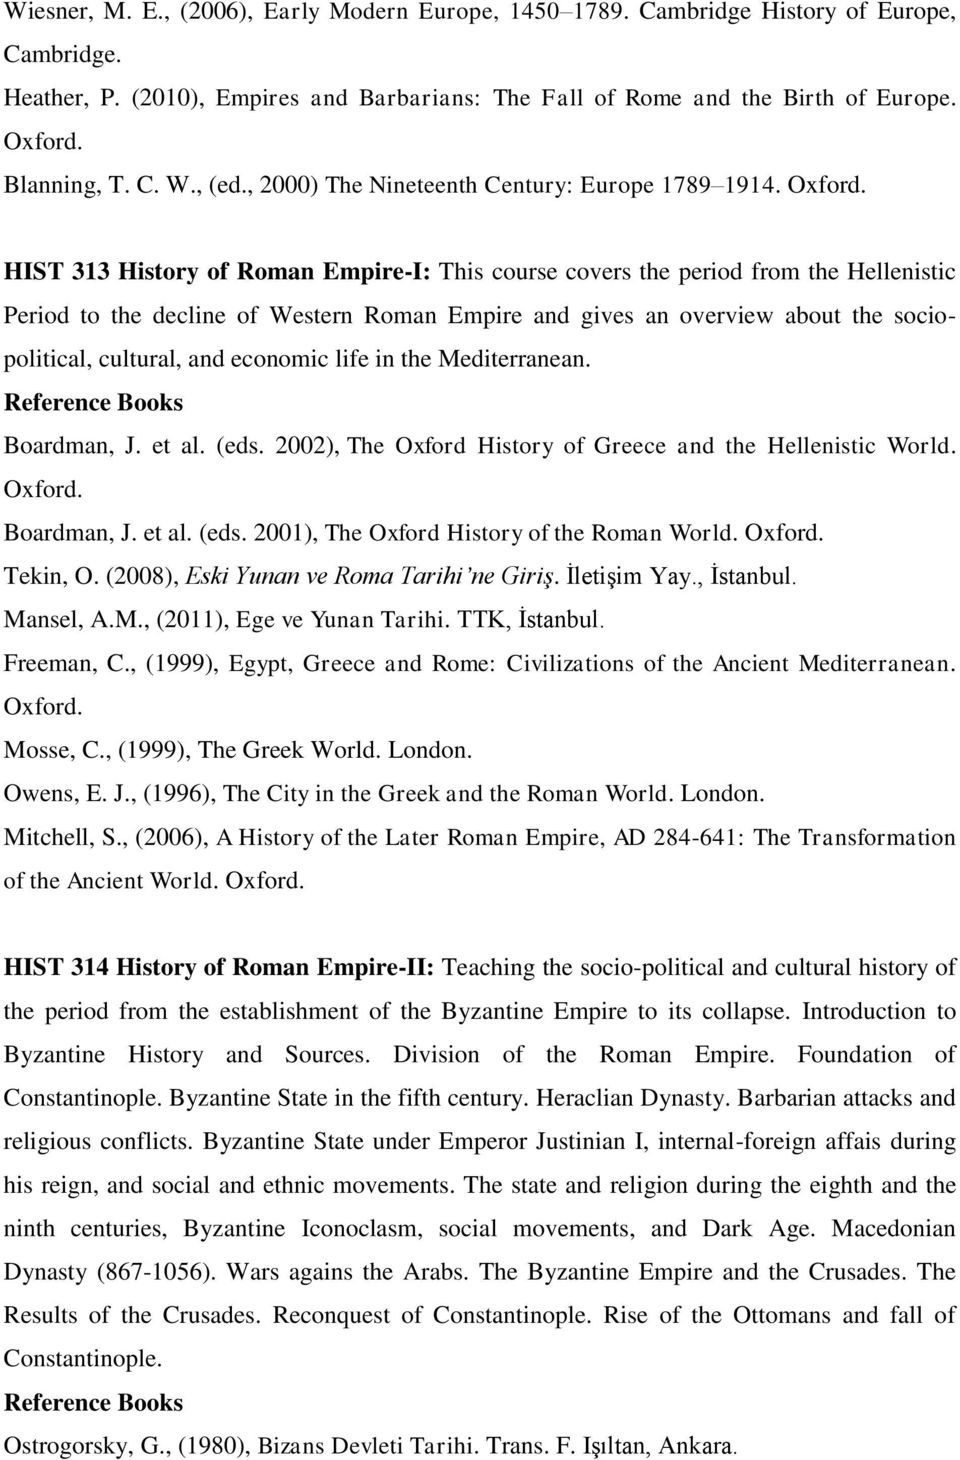 HIST 313 History of Roman Empire-I: This course covers the period from the Hellenistic Period to the decline of Western Roman Empire and gives an overview about the sociopolitical, cultural, and